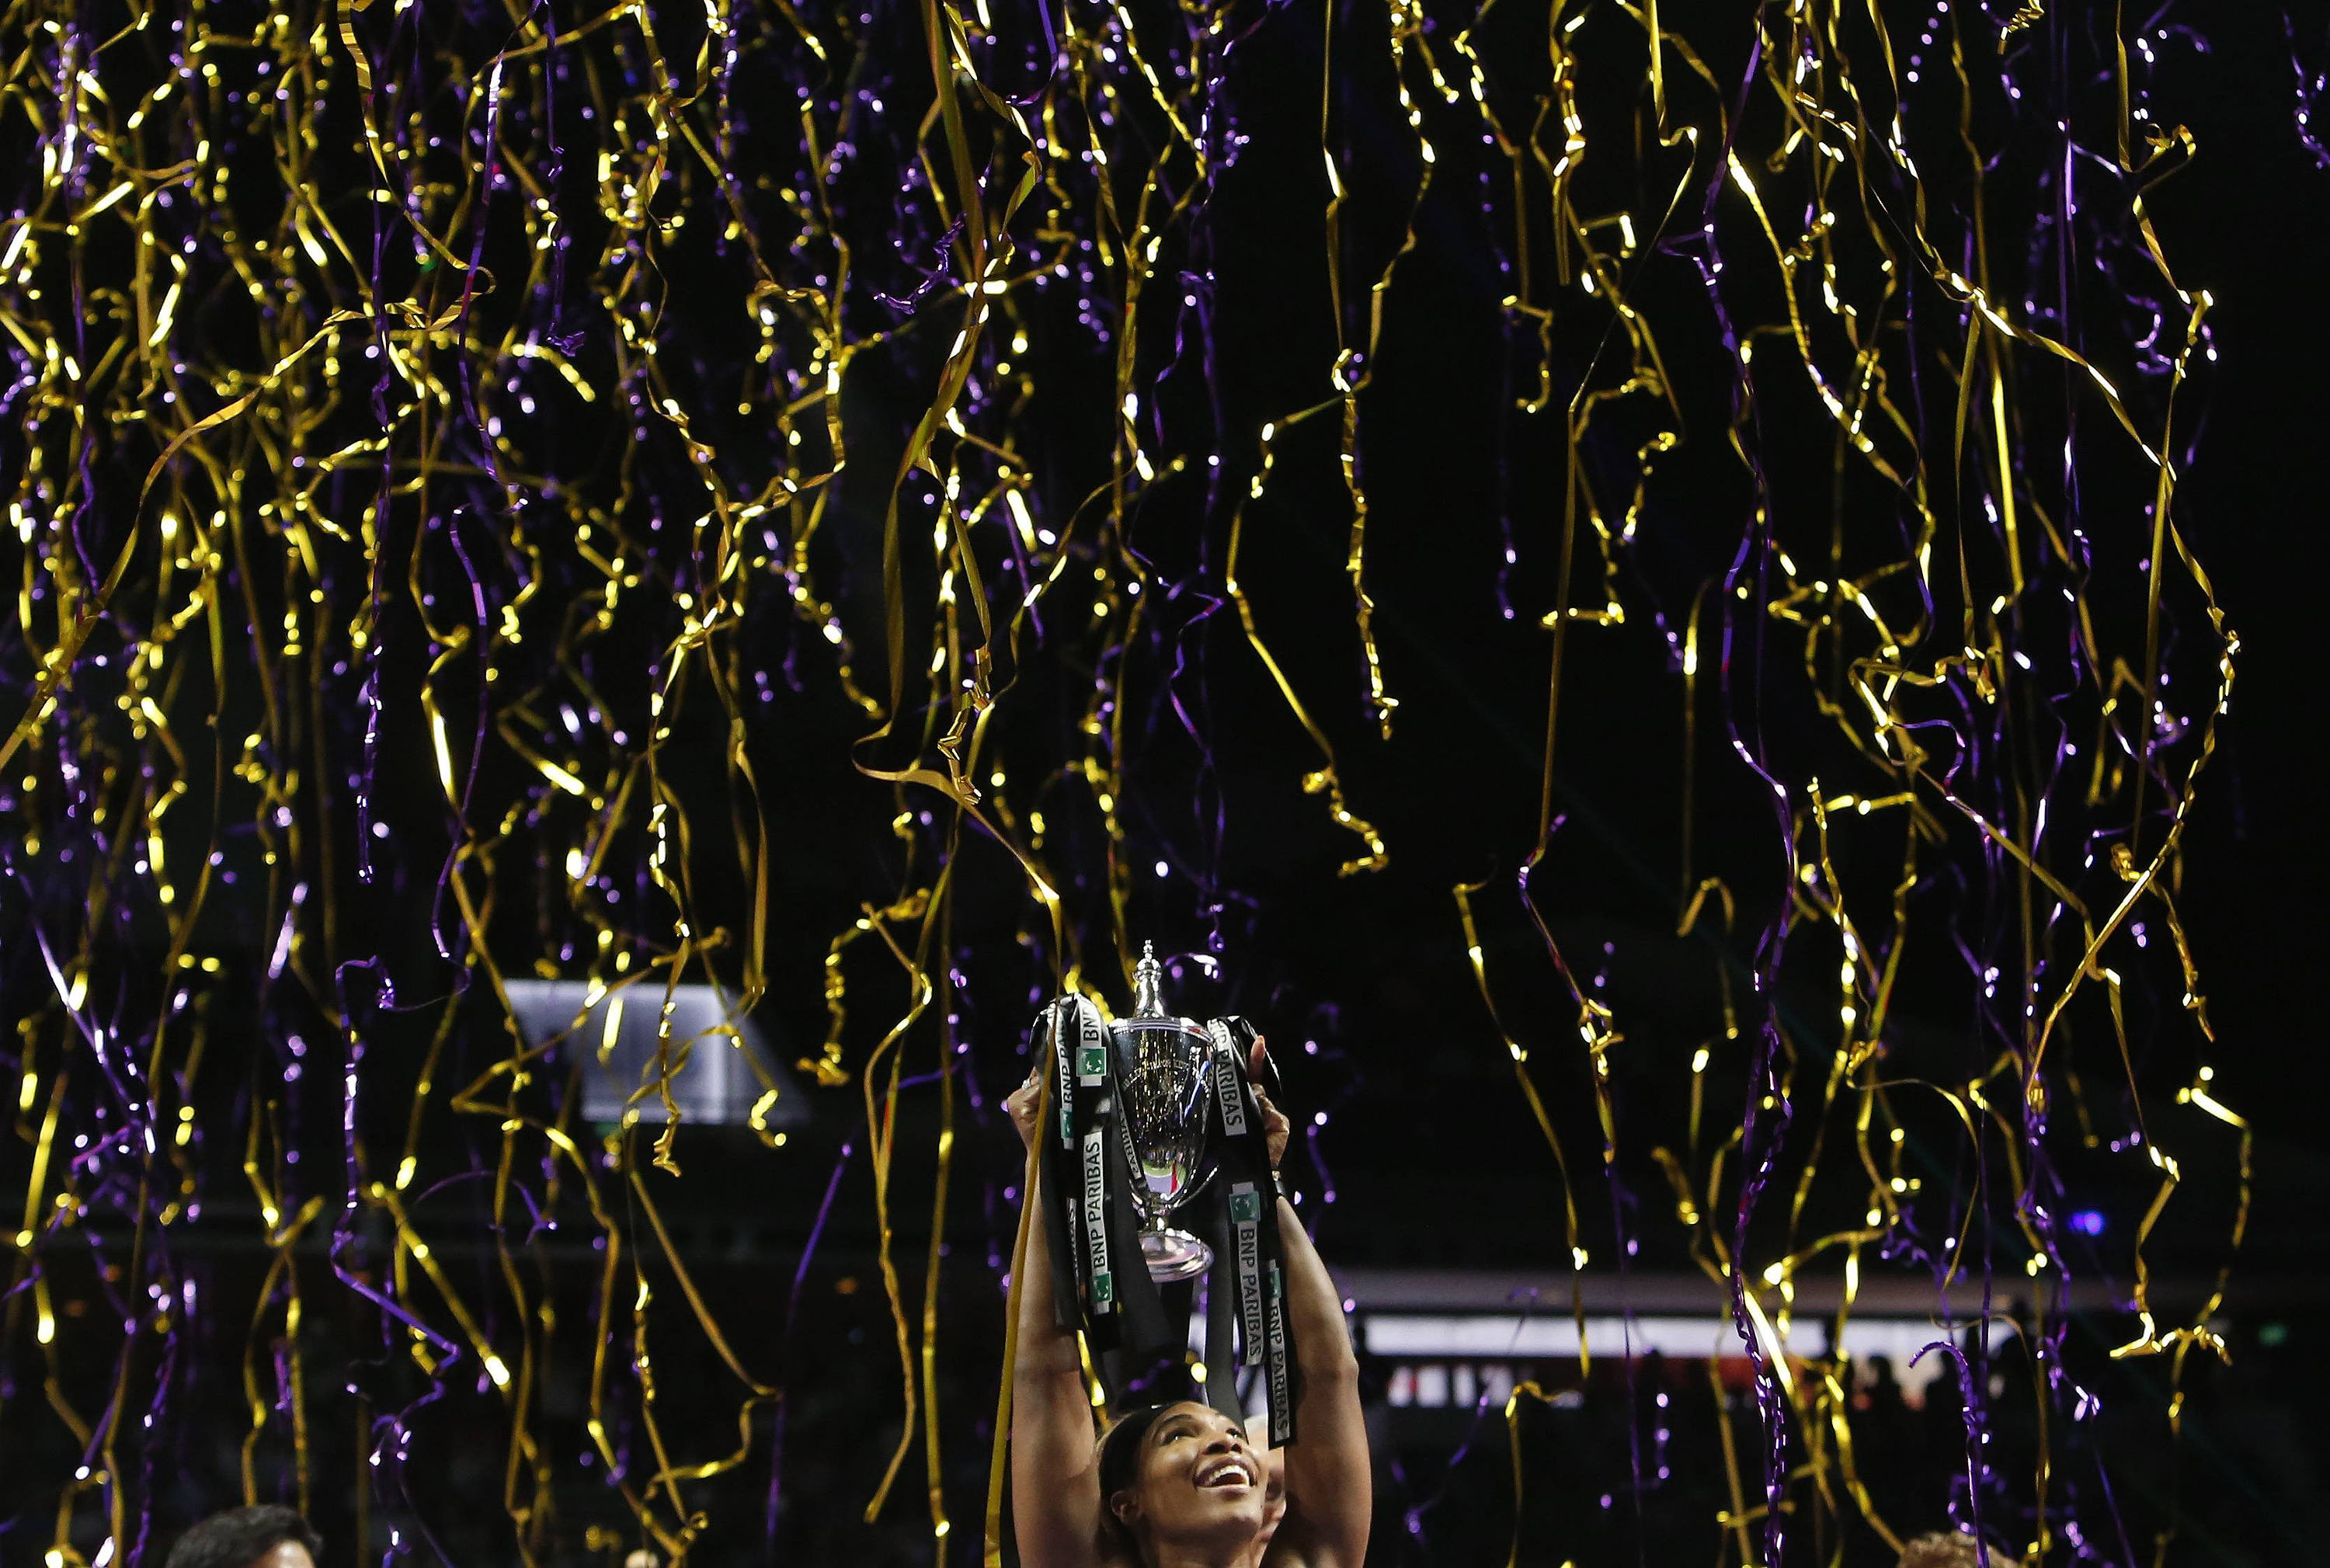 Serena Williams of the U.S. poses with the trophy after defeating Simona Halep of Romania in the women's singles final tennis match of the WTA Finals at the Singapore Indoor Stadium on October 26, 2014.